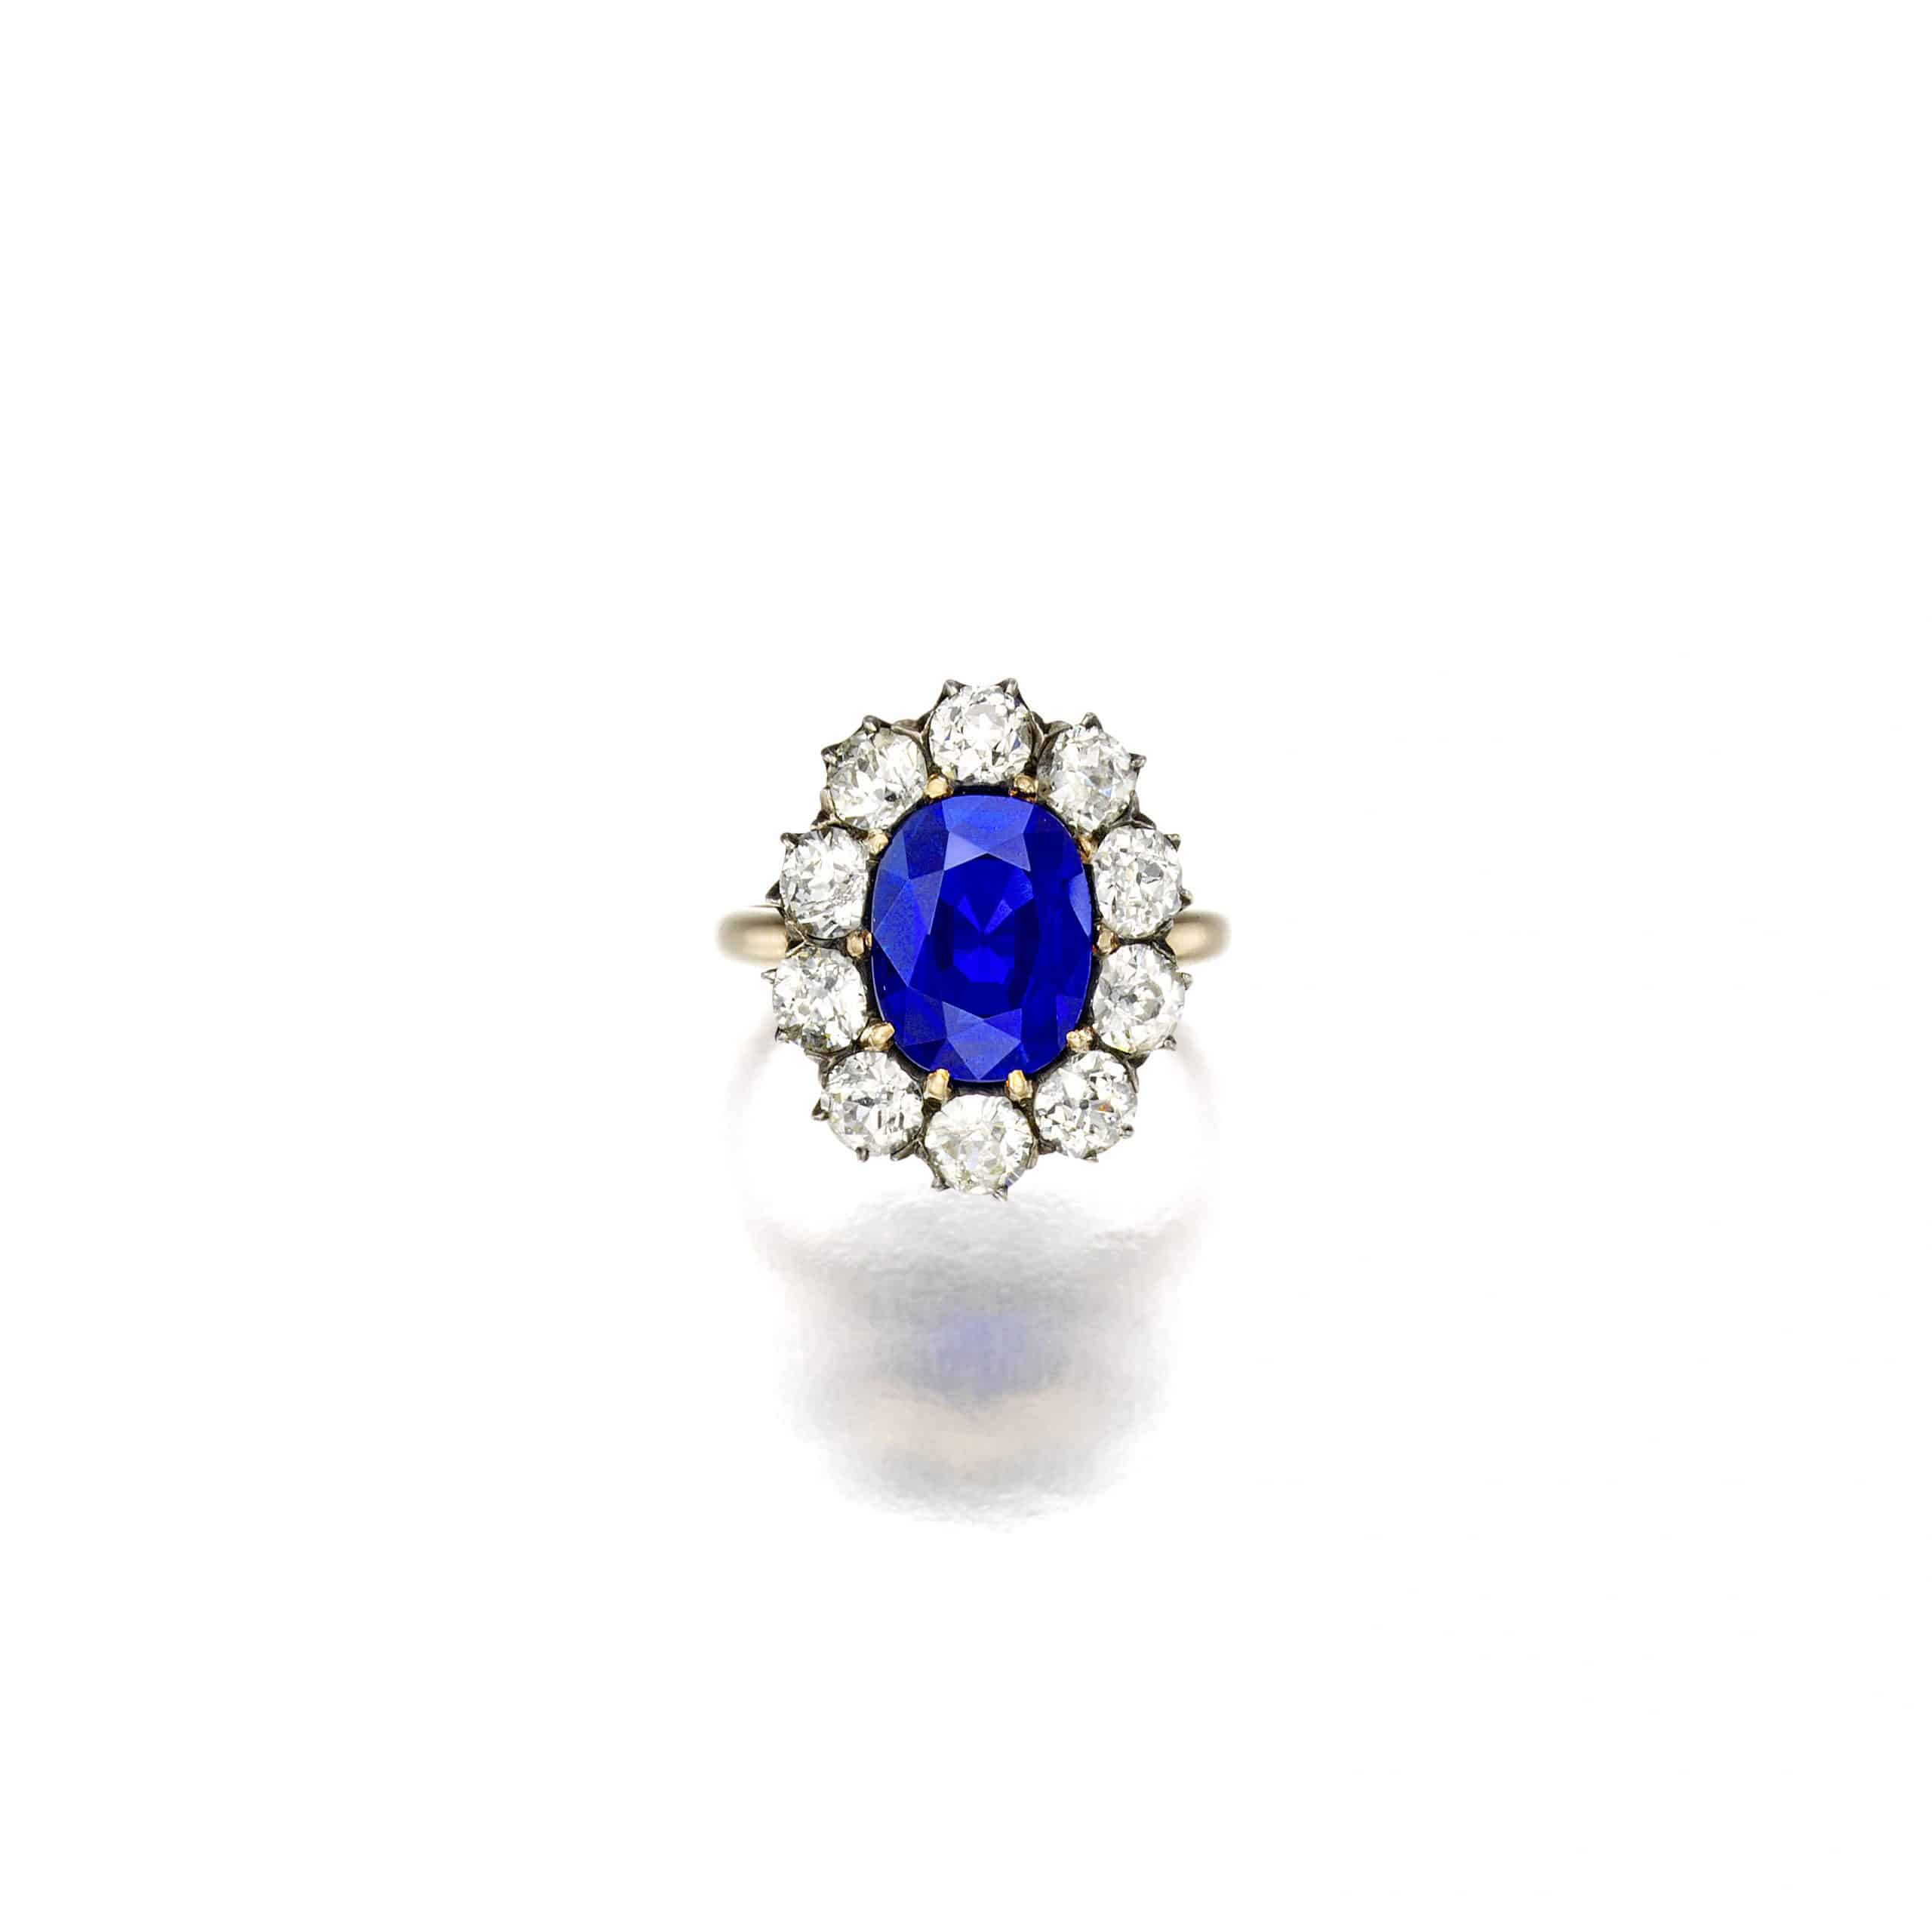 A Kashmir Sapphire and Diamond Ring, late 19th century